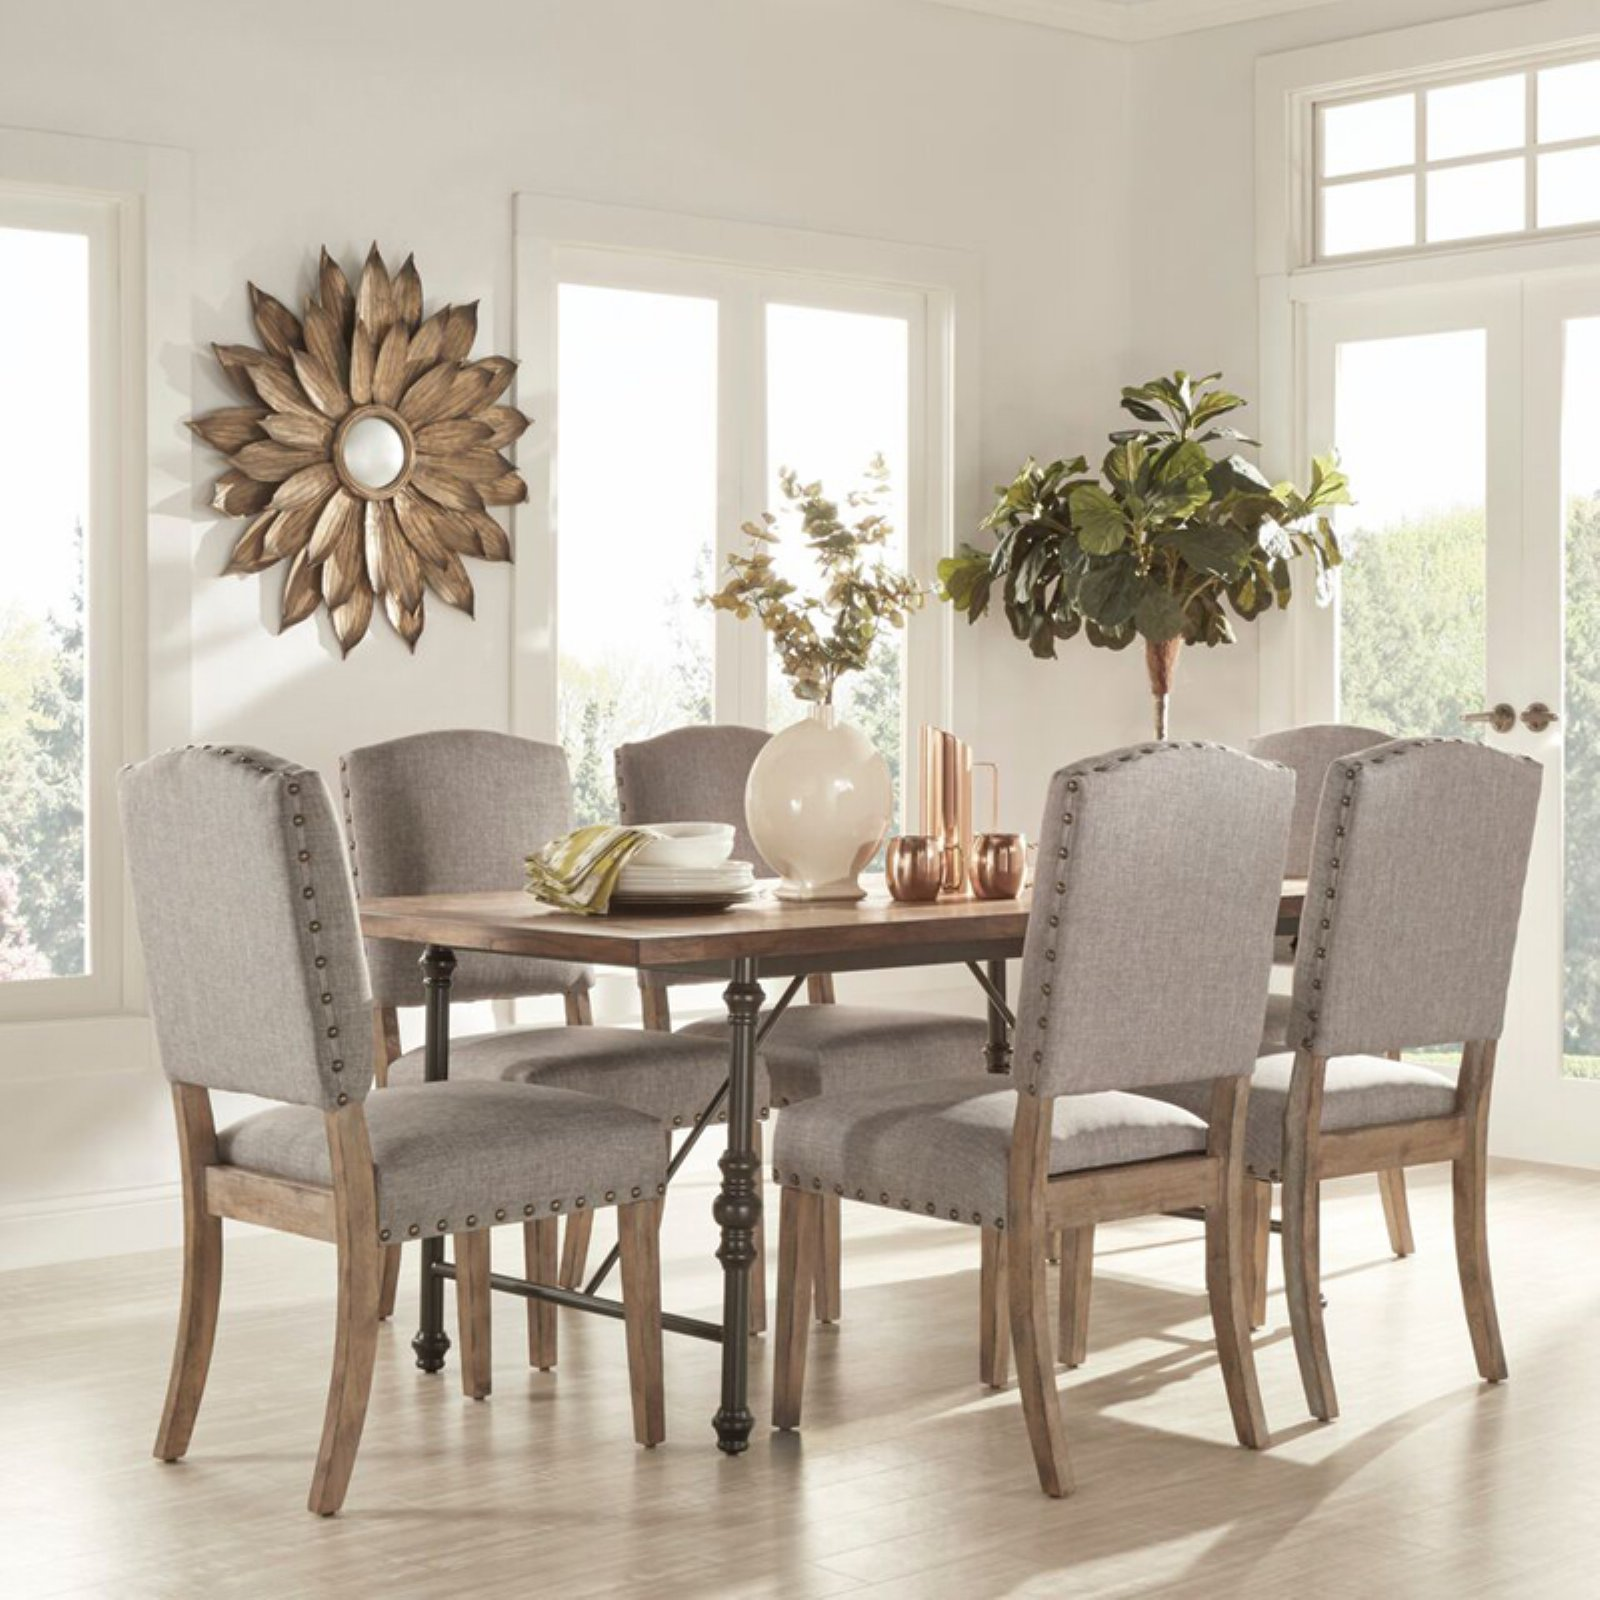 Weston Home 7 Piece Industrial Dining Set With Gray Chairs